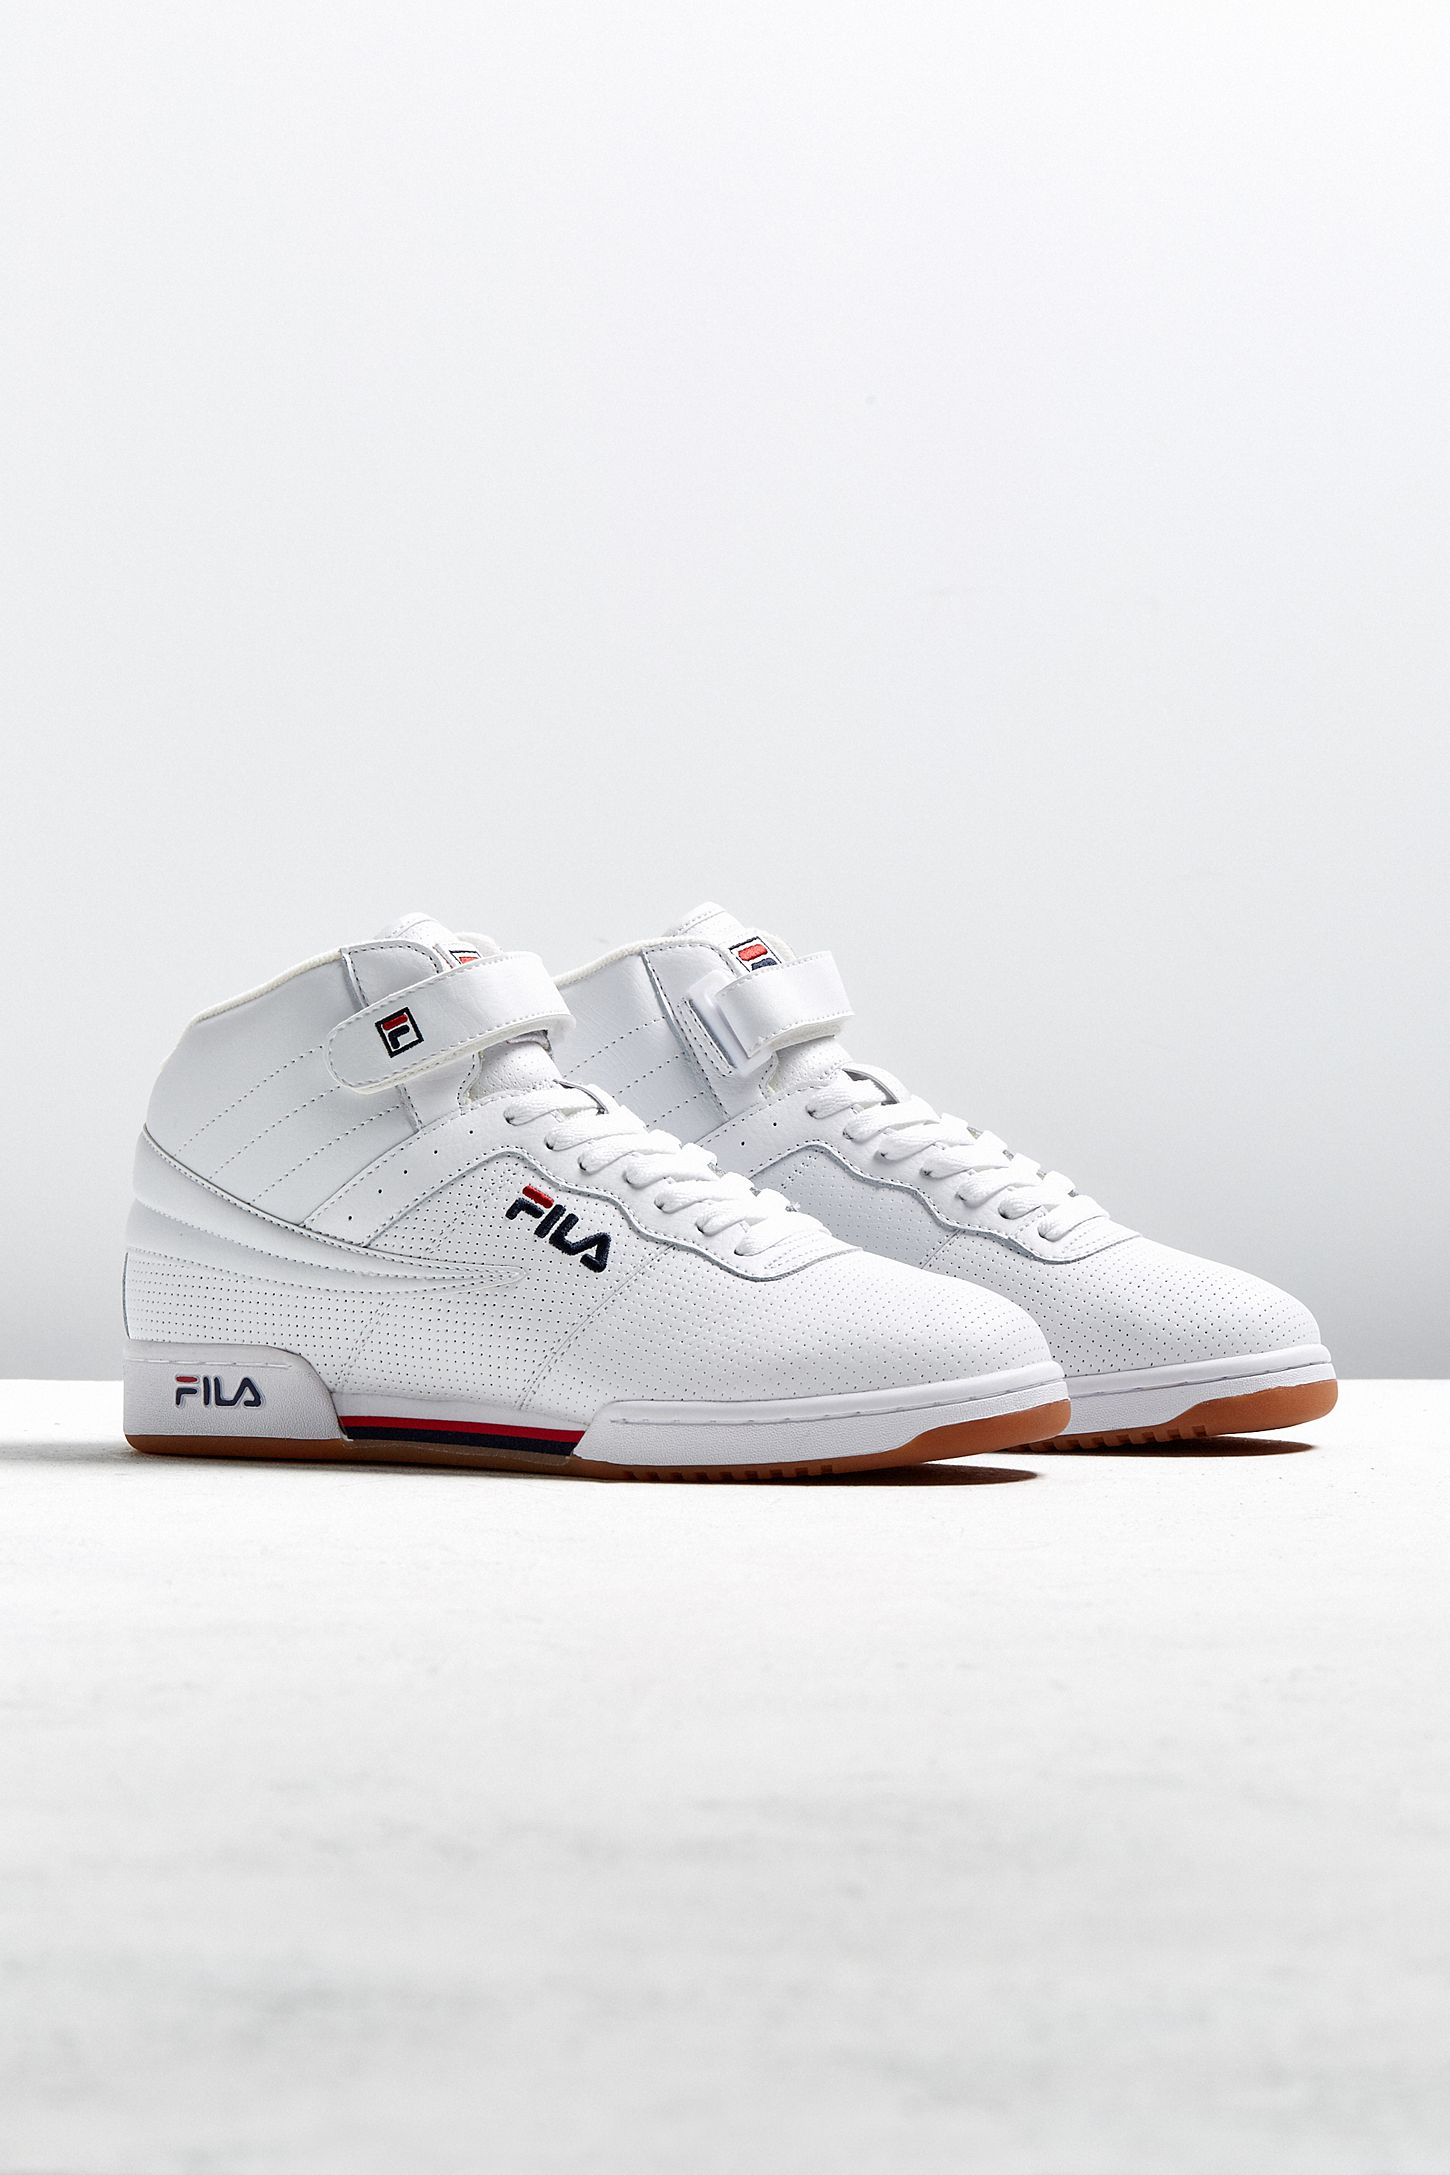 530416a737eb FILA F13 Perforated Sneaker